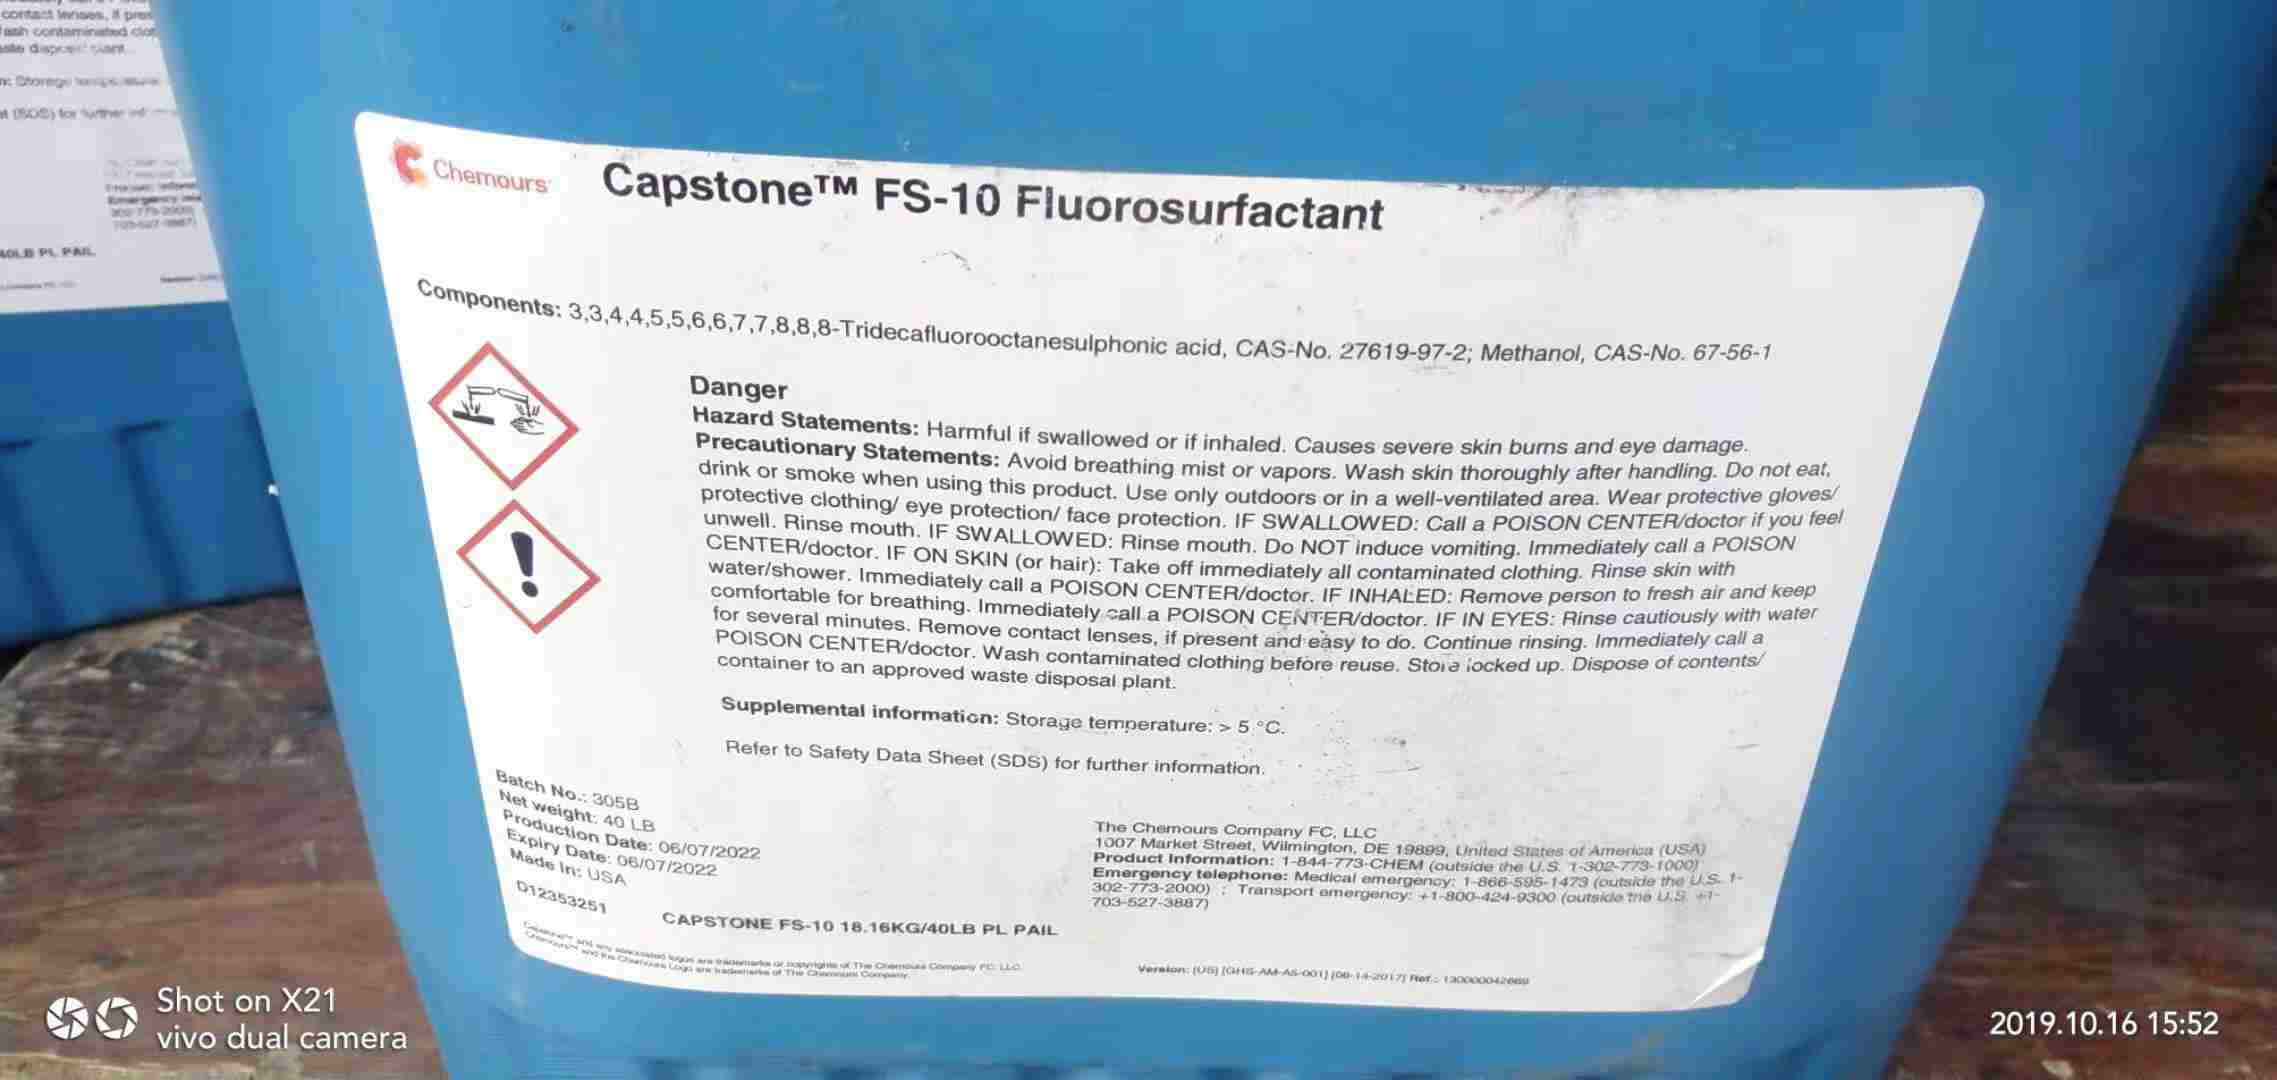 Kemu ™ Capstone® (formerly DuPont ™) fluorosurfactant FS-10